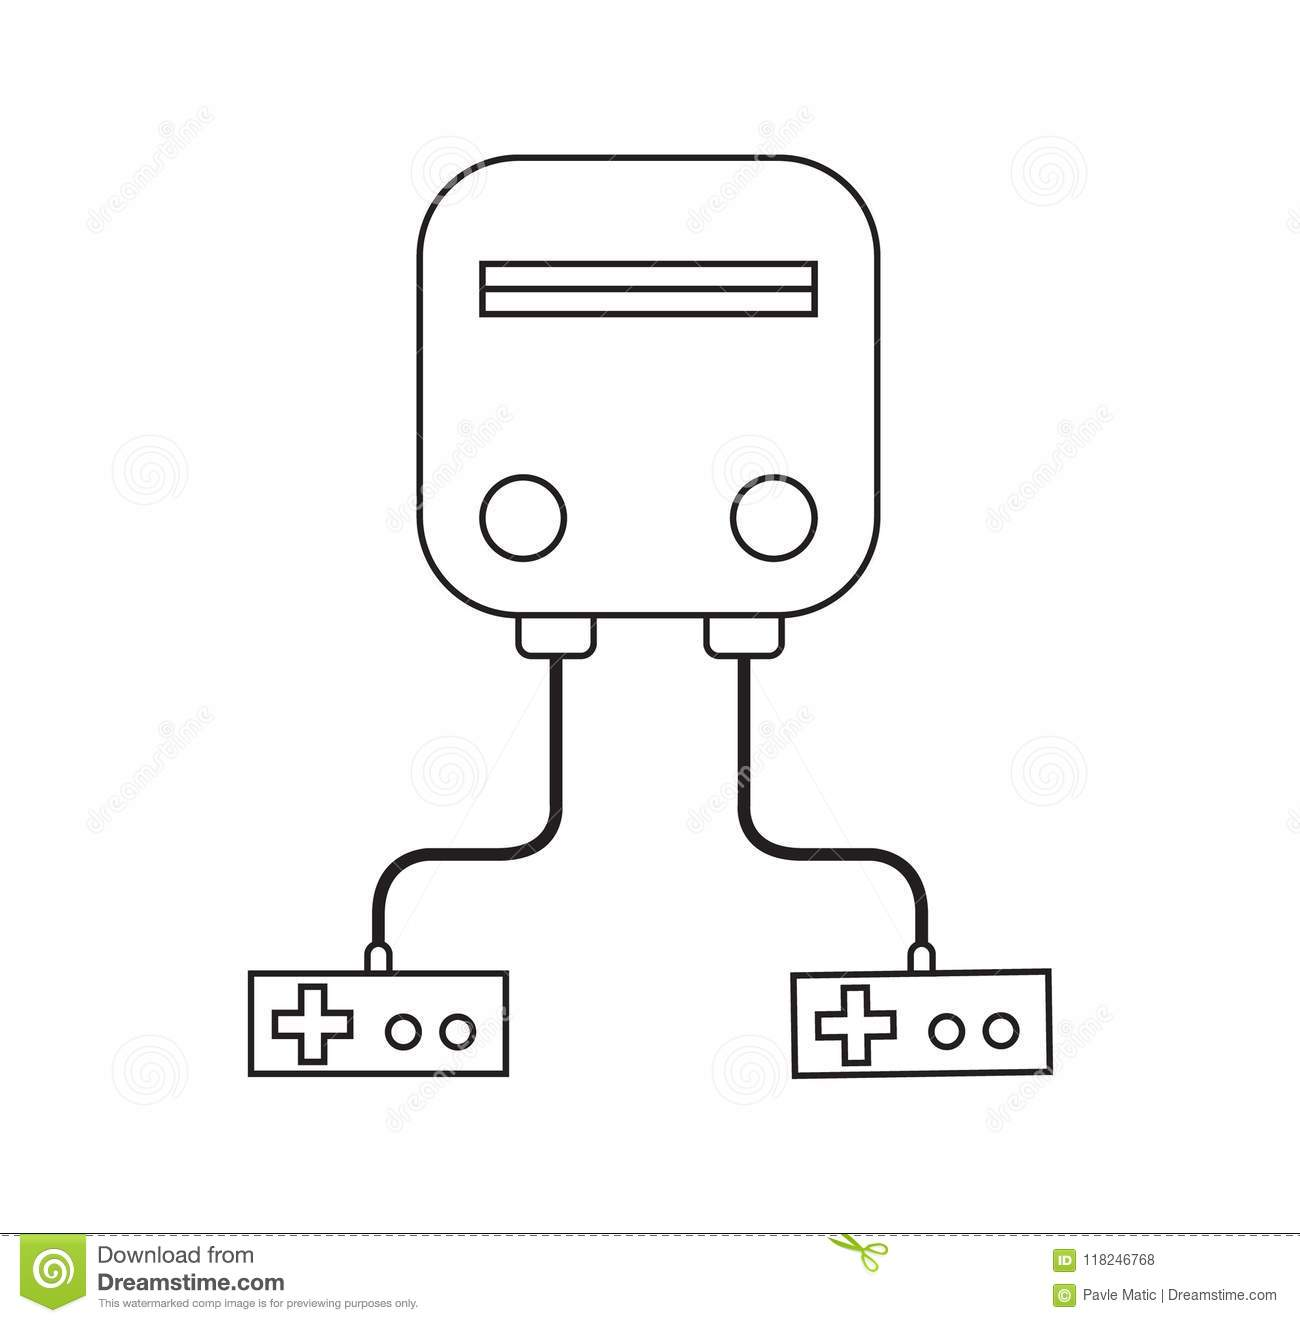 Retro Video Game Console Outline Stock Vector Illustration Of - Video game outline